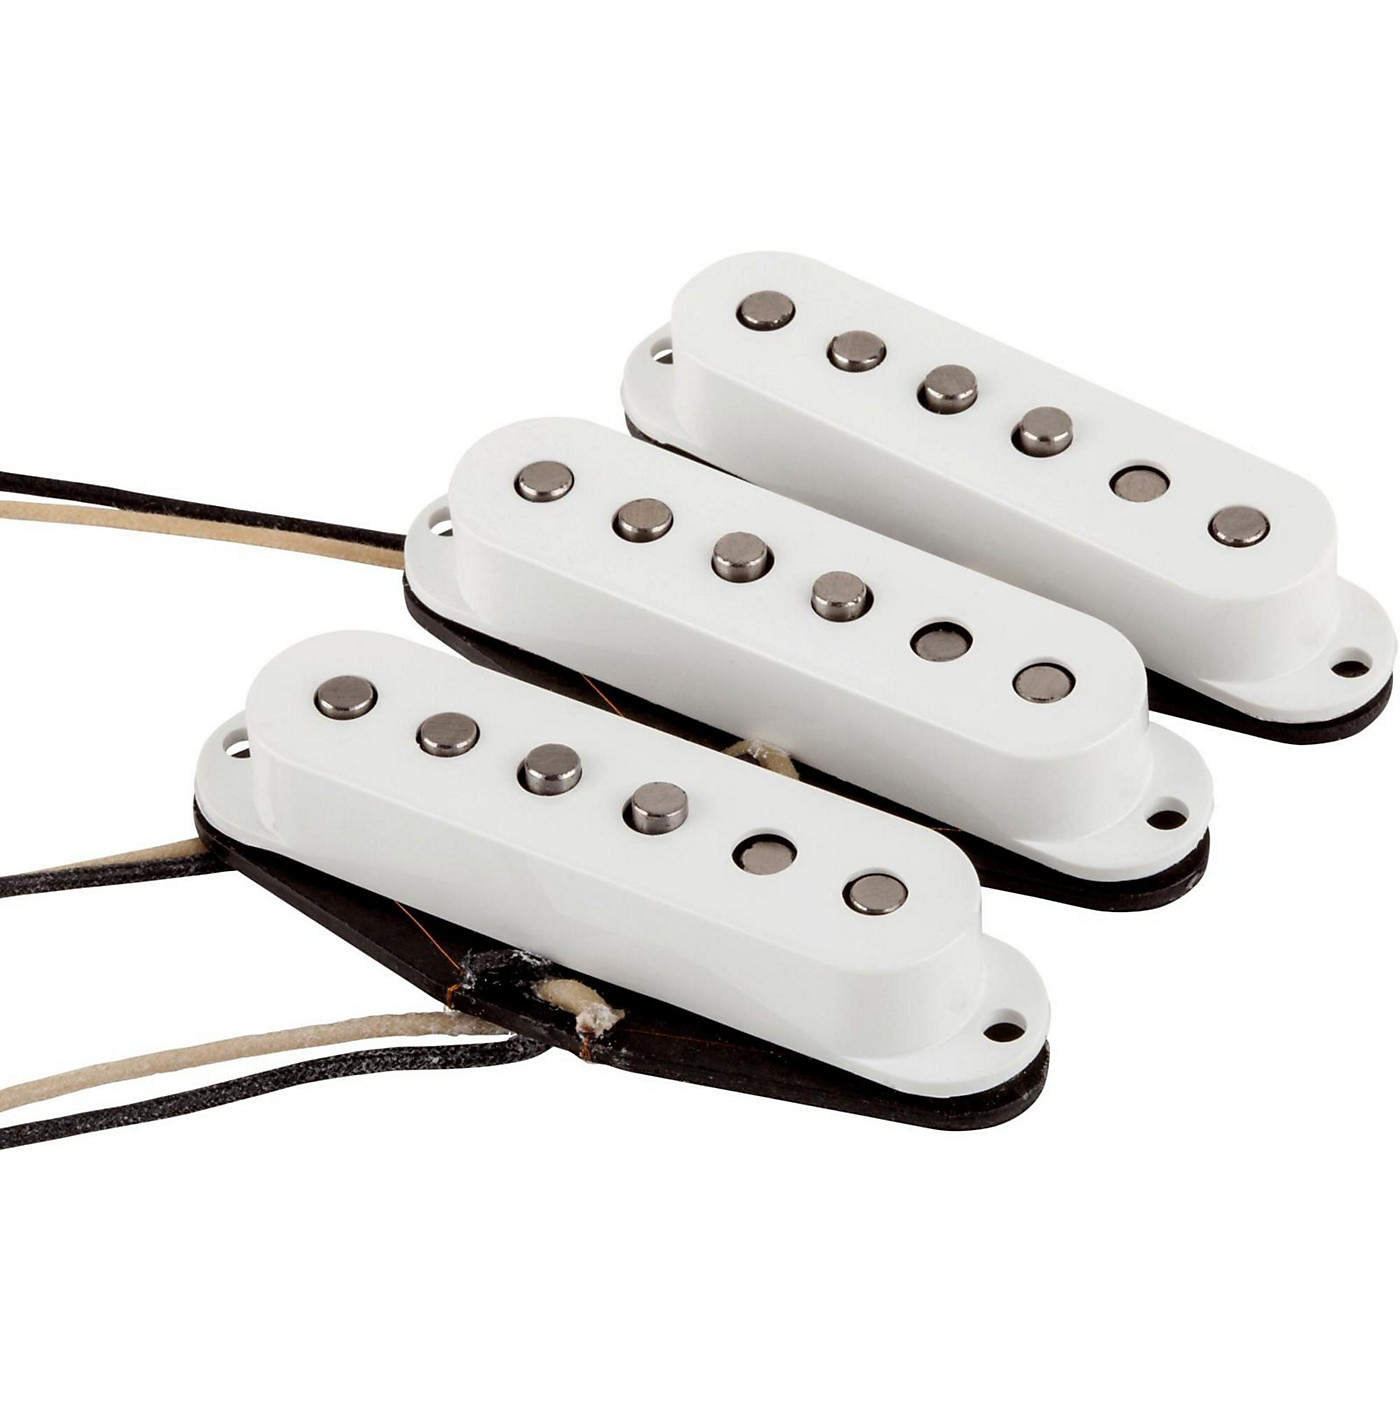 Fender Custom Shop '54 Strat Pickups Set of 3 thumbnail